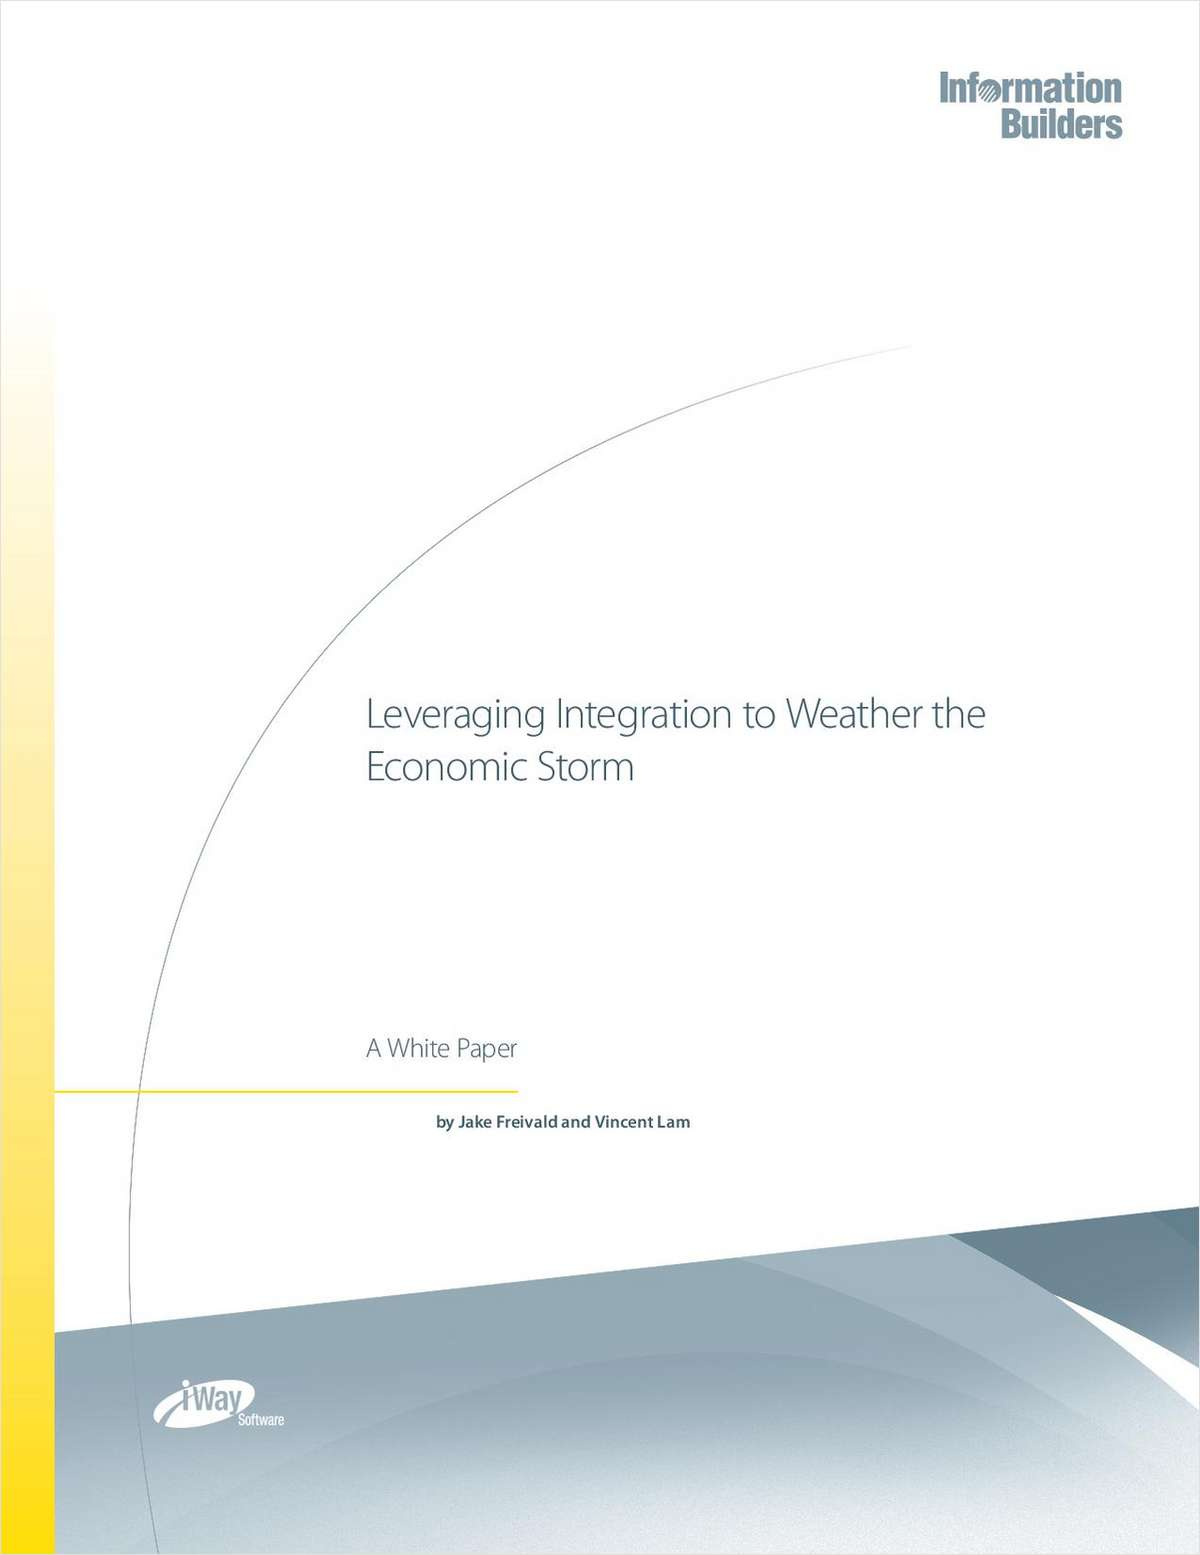 Leveraging Integration to Weather the Economic Storm